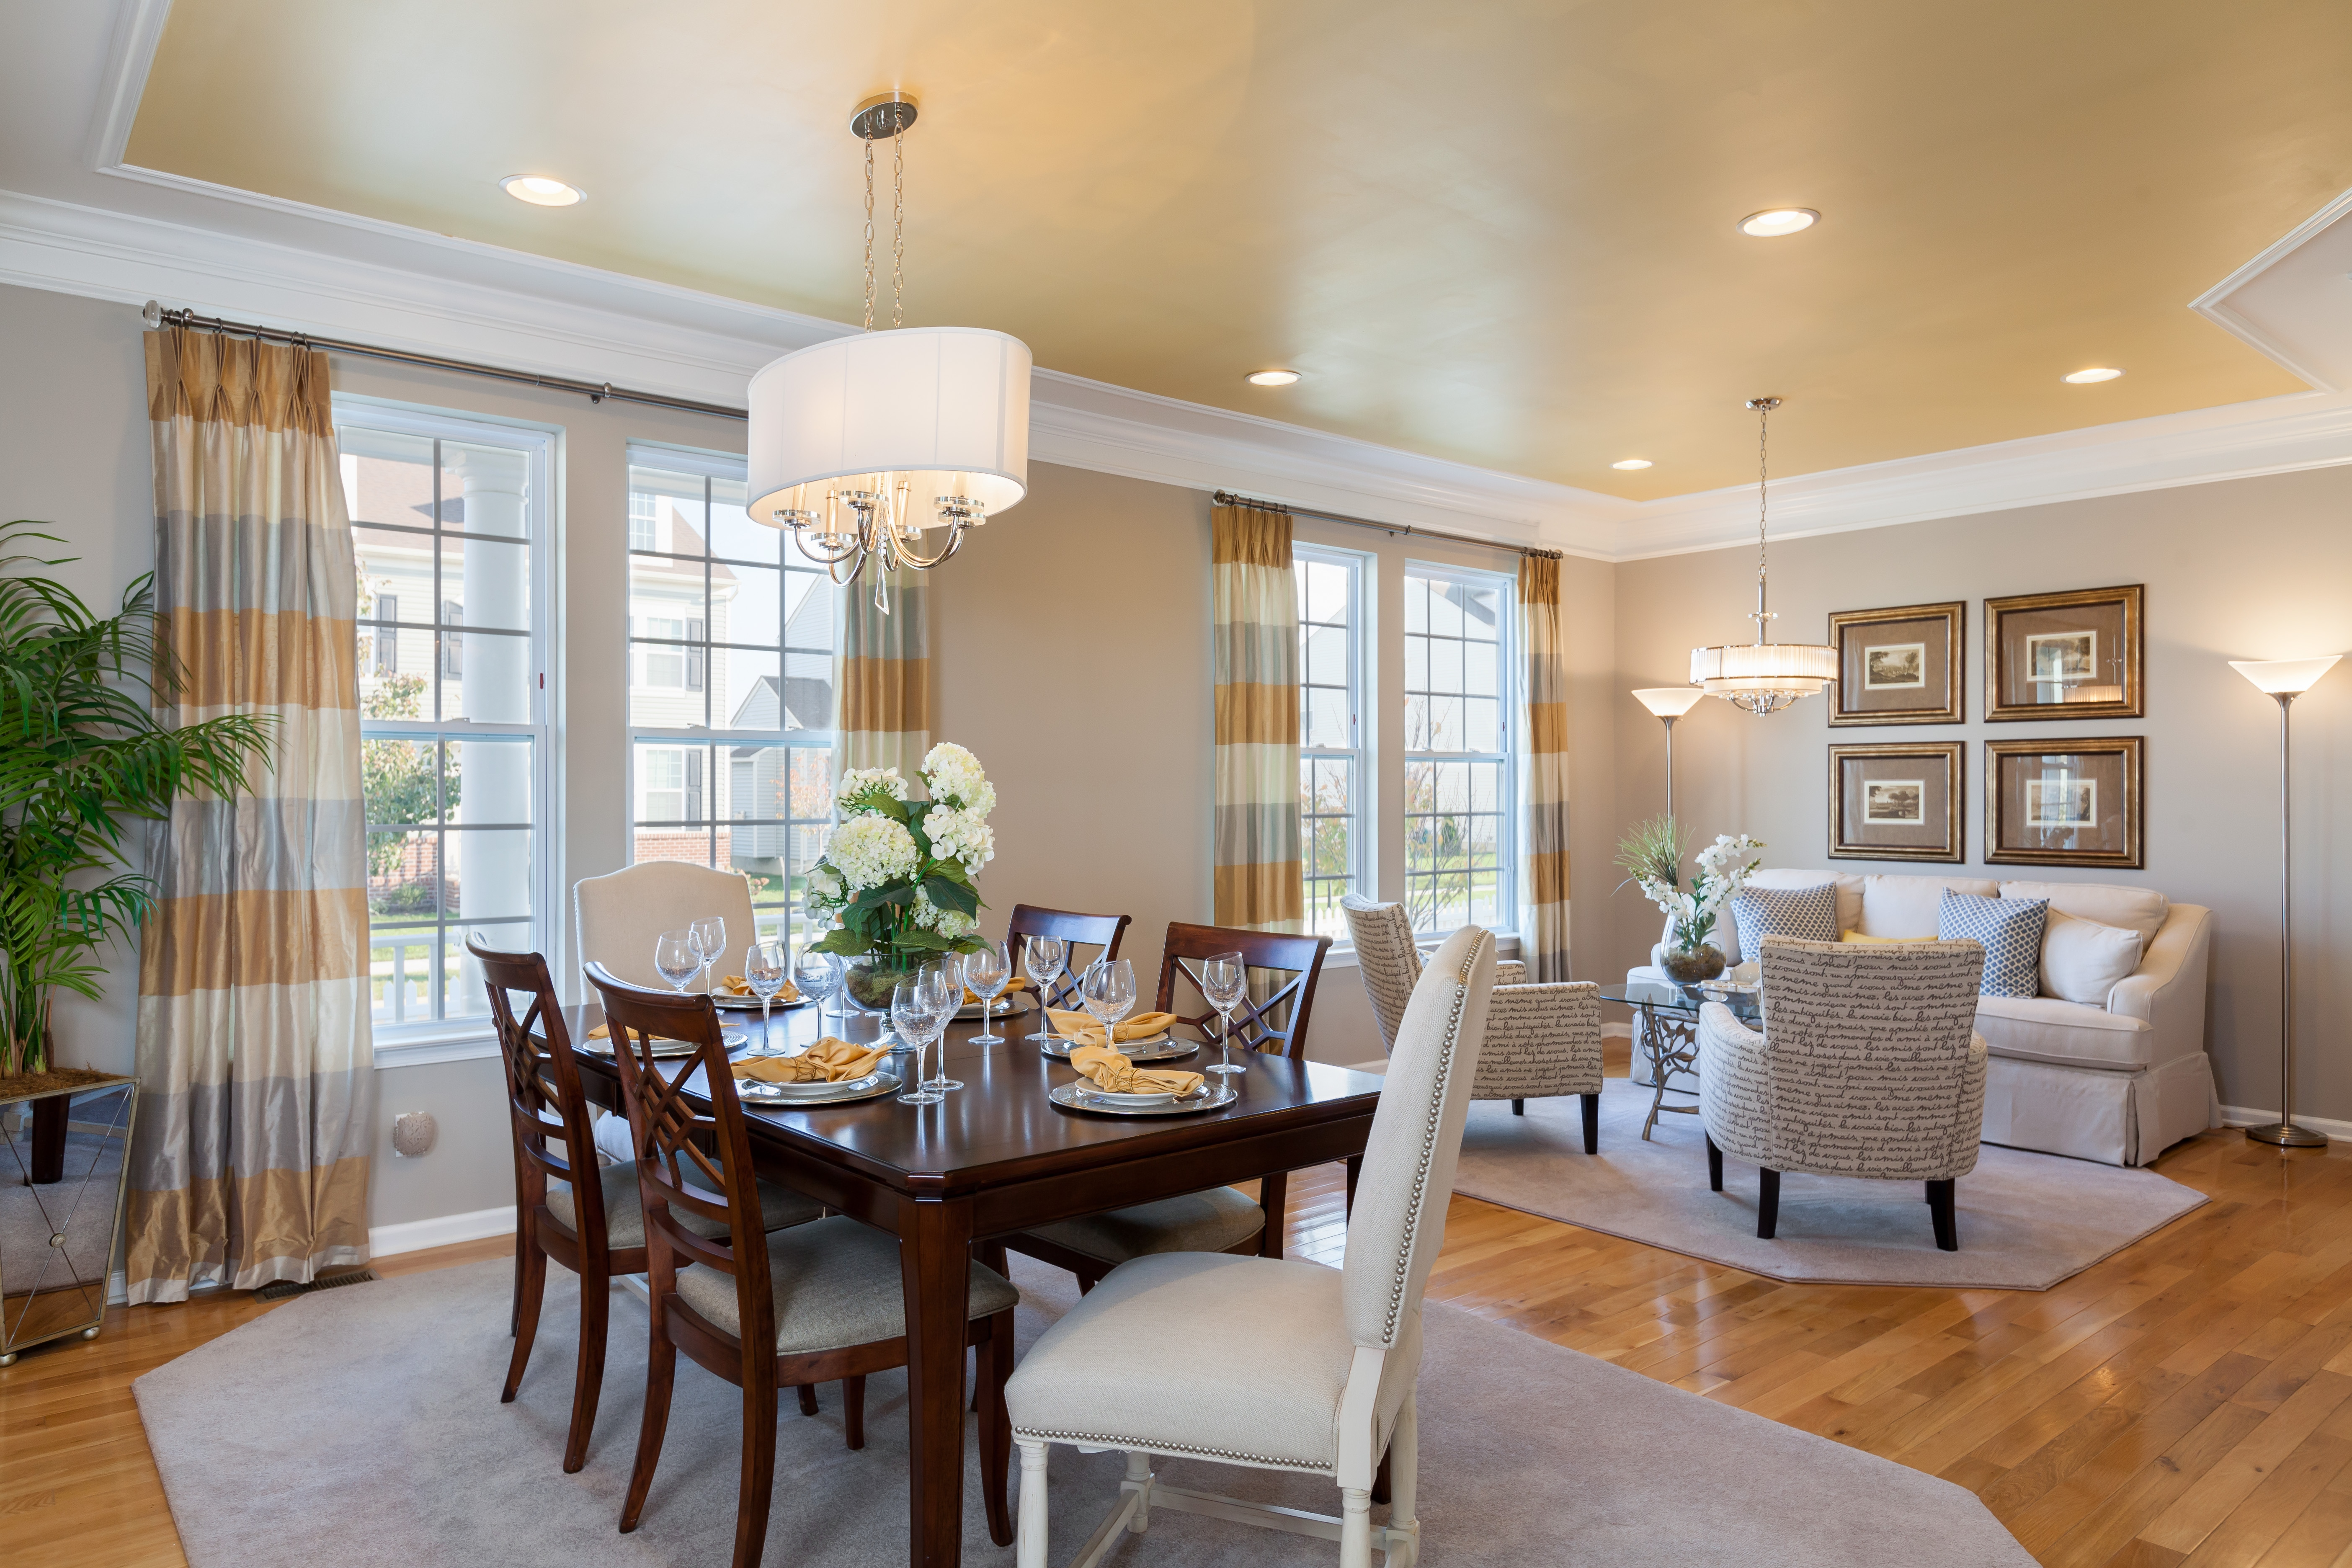 5 Questions to Ask Your Home Builder to Ensure you Hire the Best